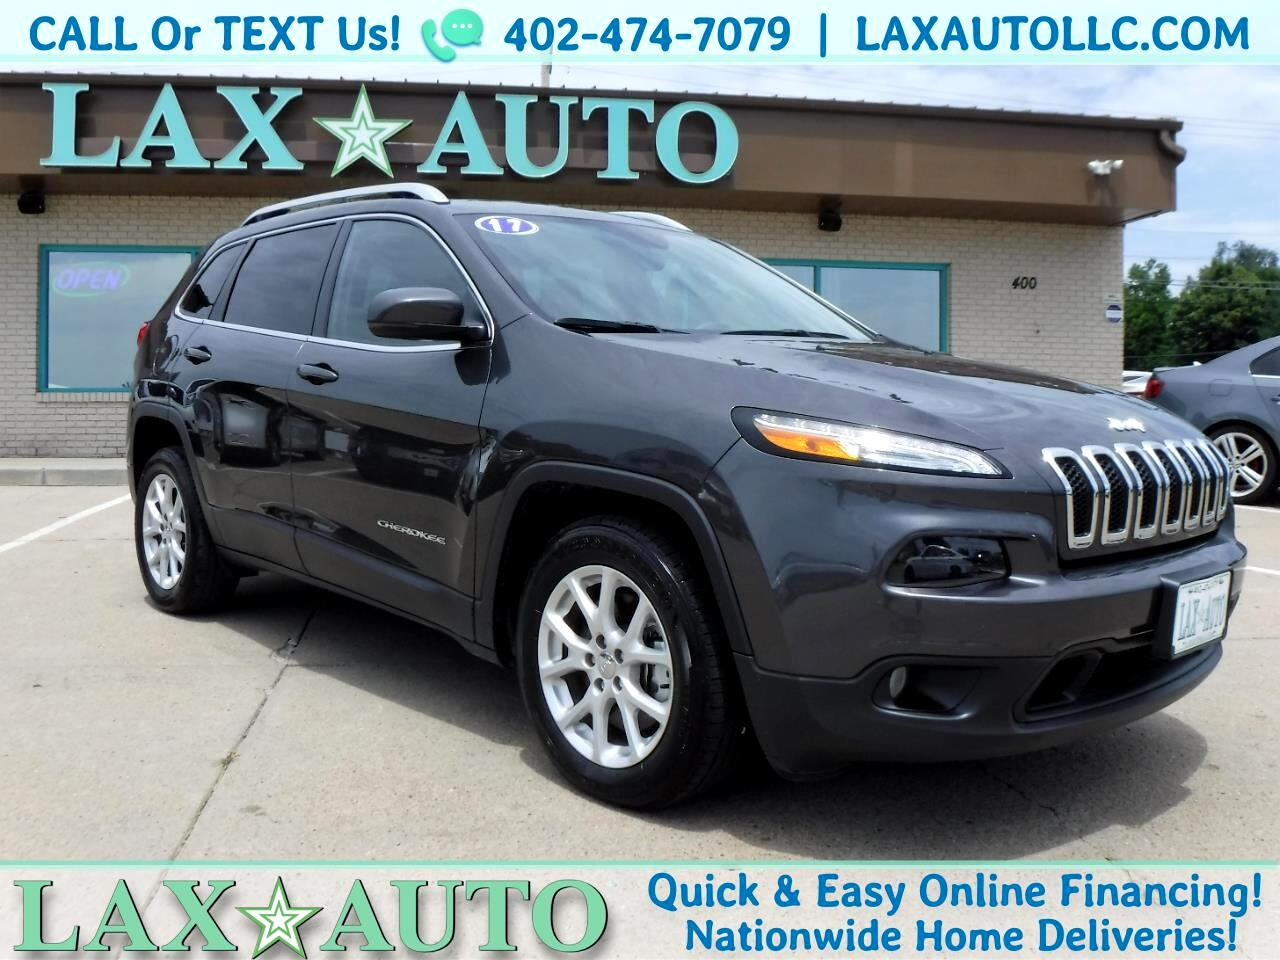 2017 Jeep Cherokee Latitude V6 w/ only 22k Miles! Back-up cam!